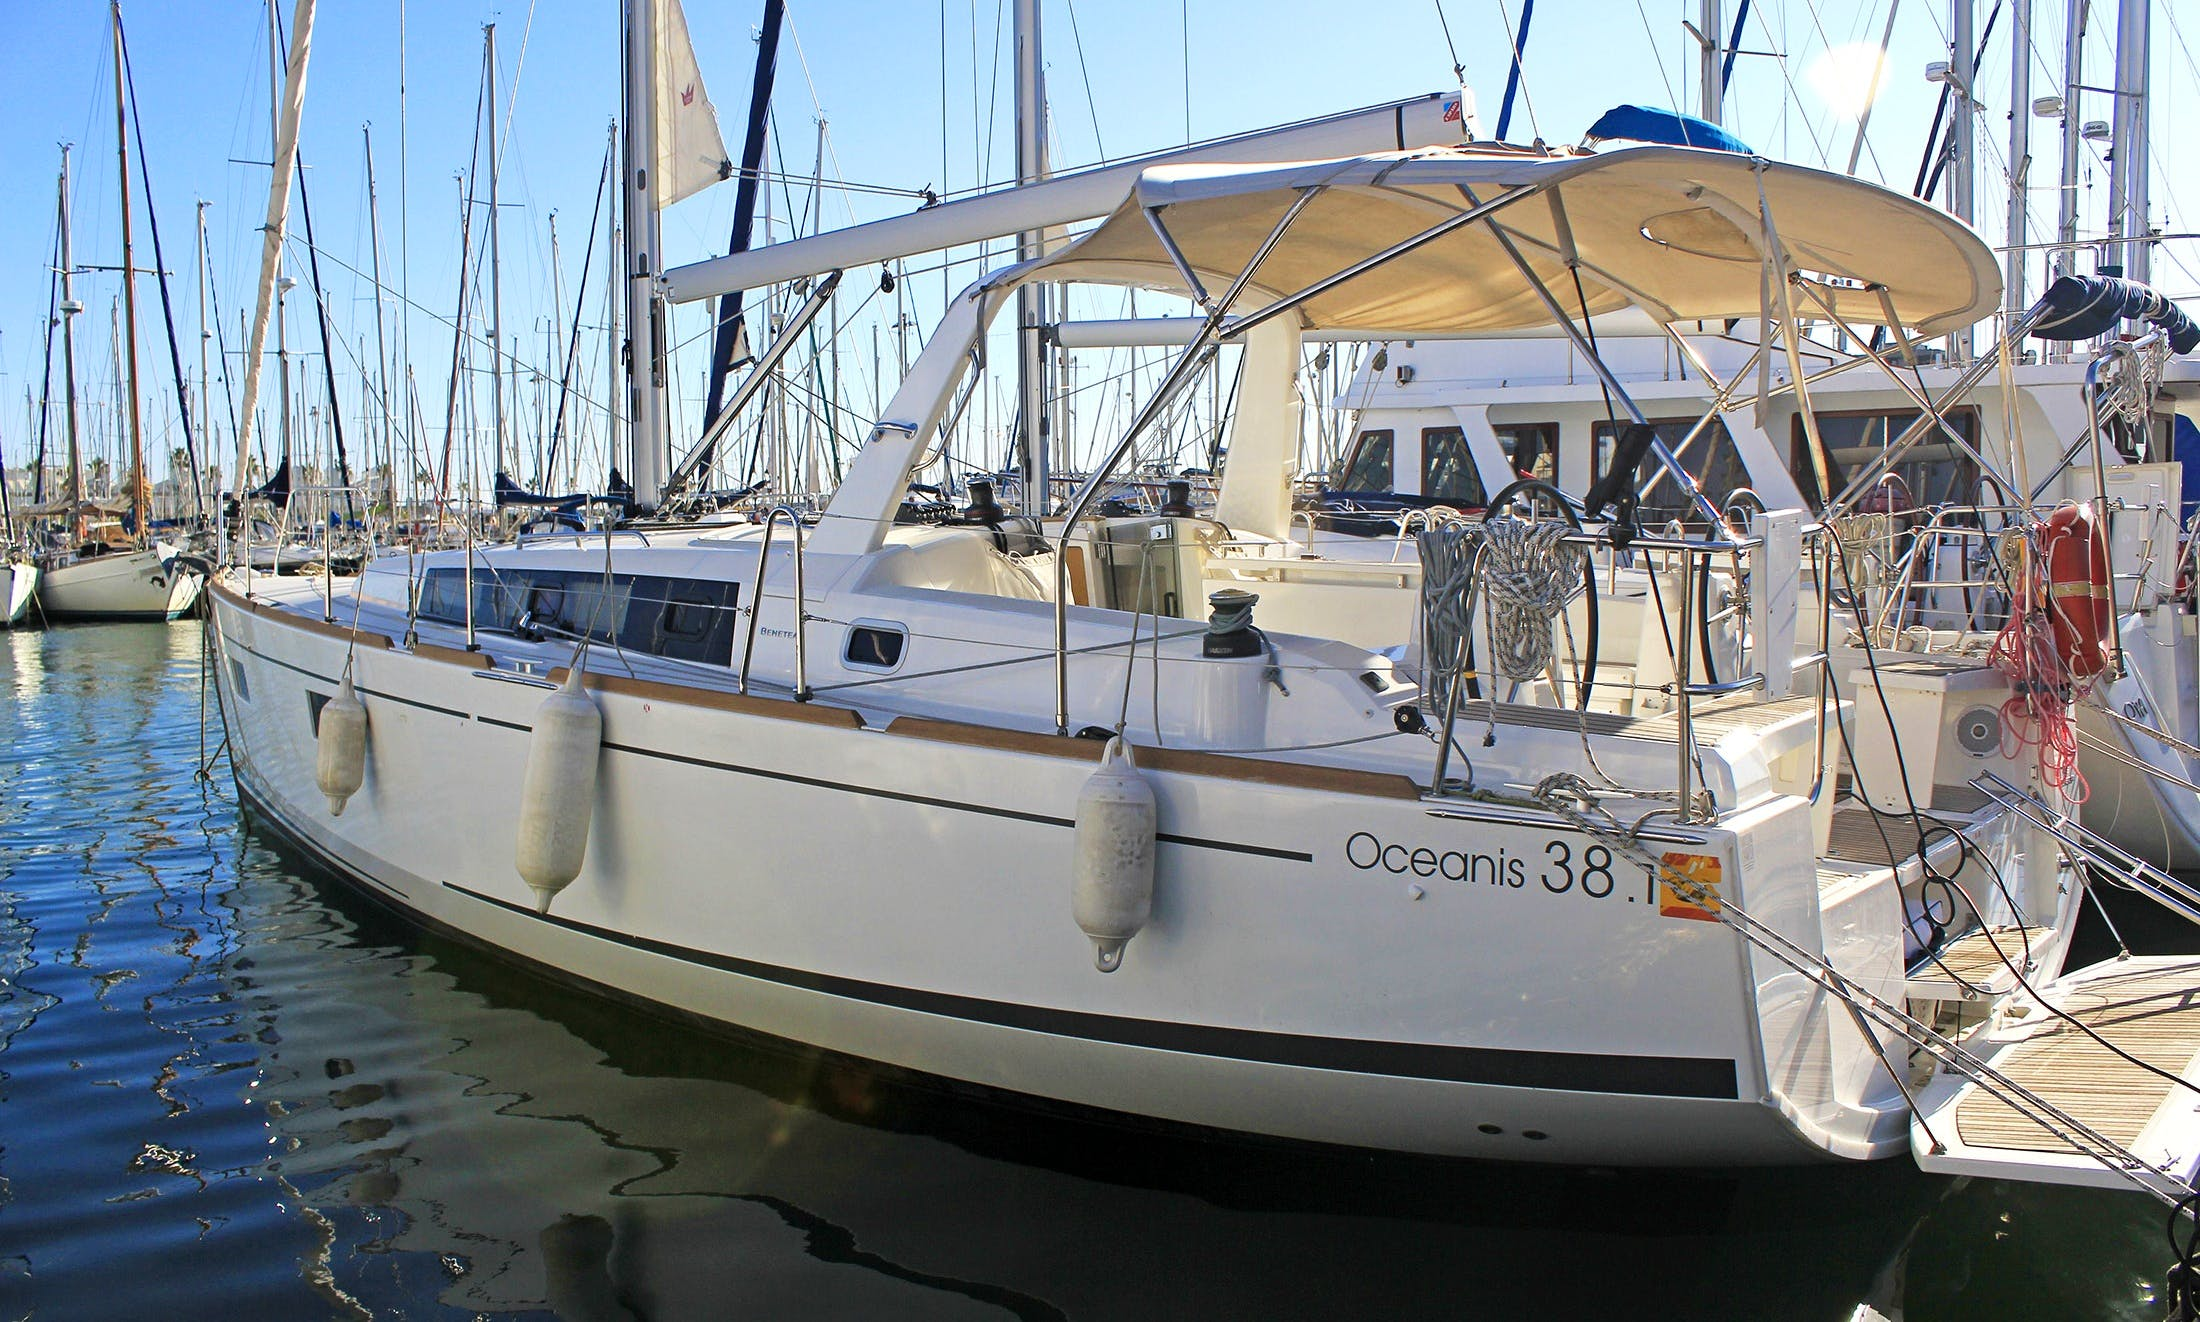 Charter the brand new Beneteau Oceanis 38.1 Sailboat in Mallorca, Spain